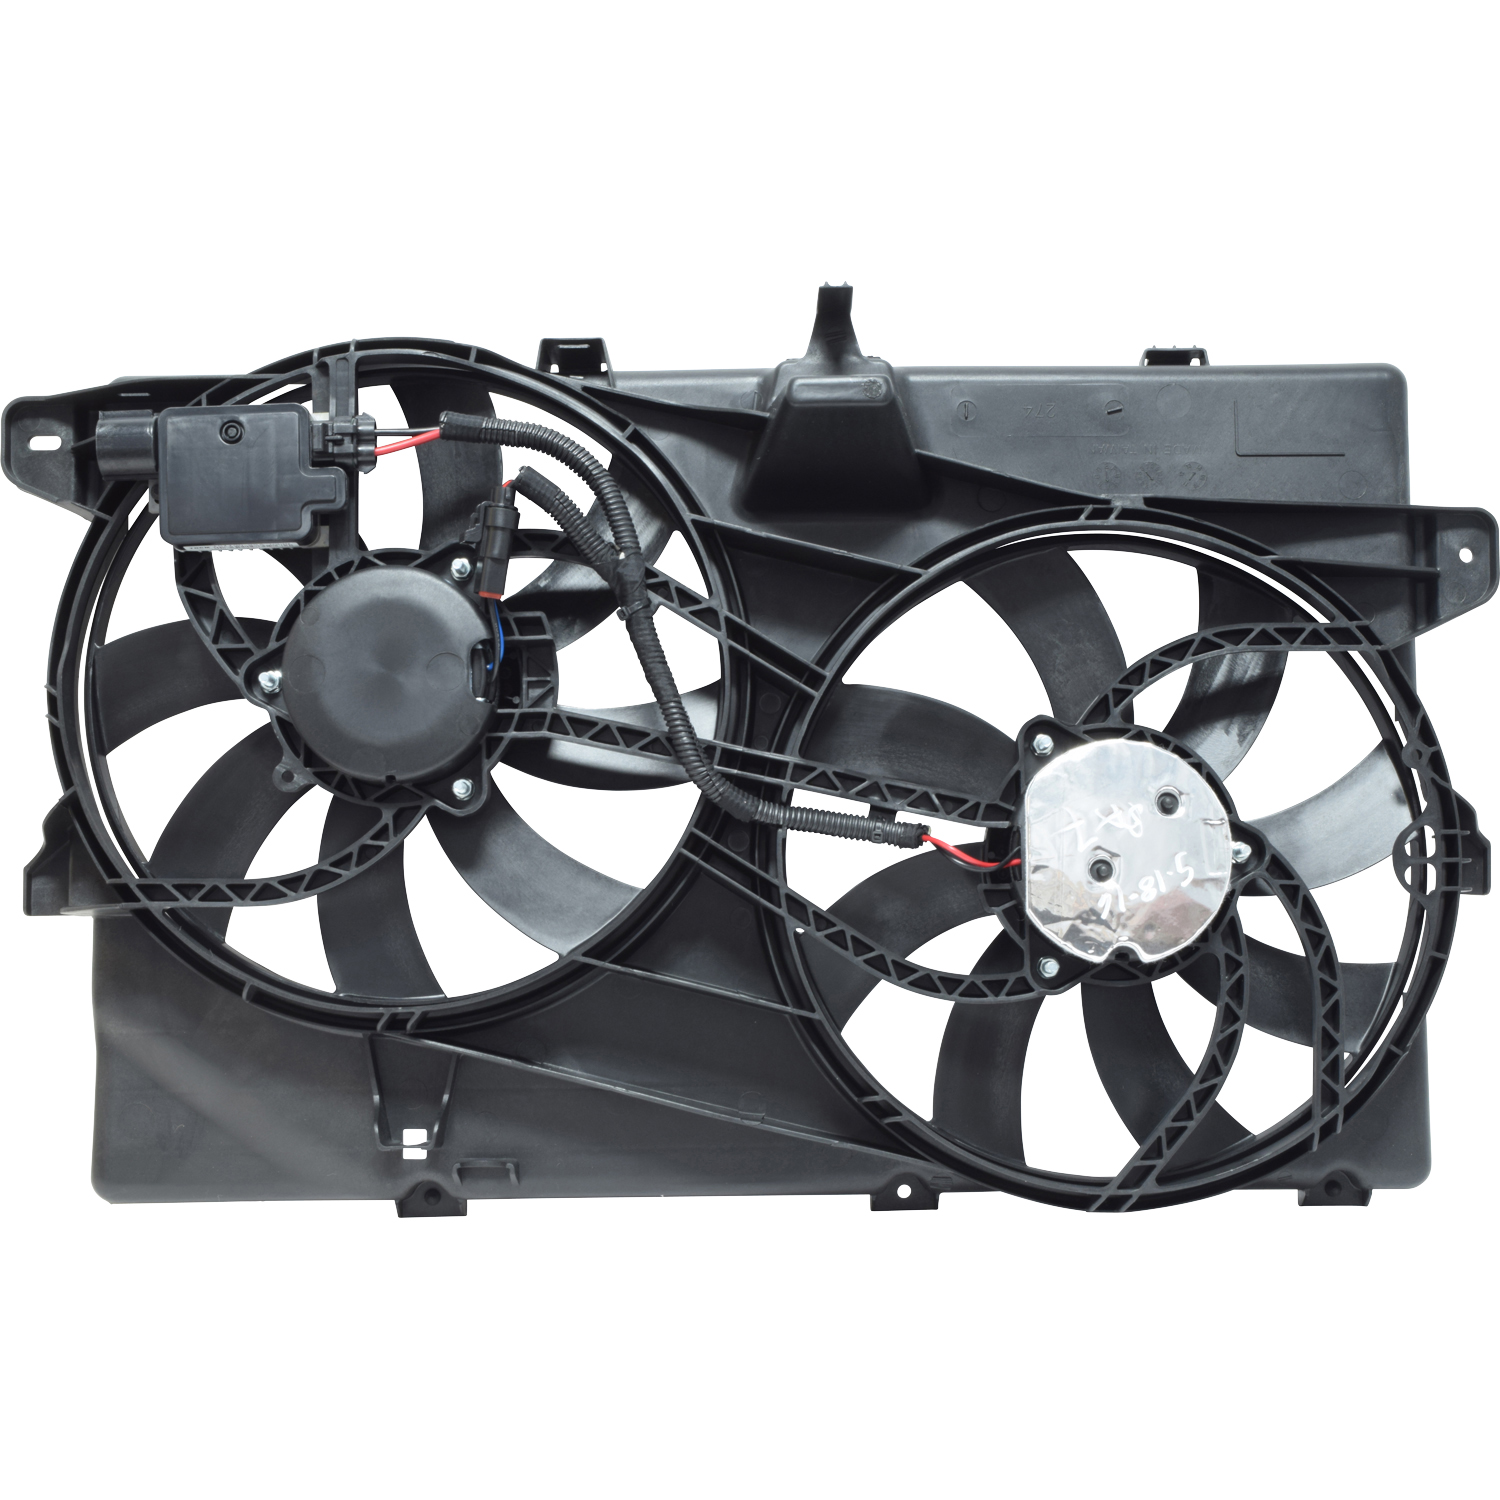 New Cooling Fan Assembly For Ford Edge Lincoln MKX 2007-2014 With Tow Package